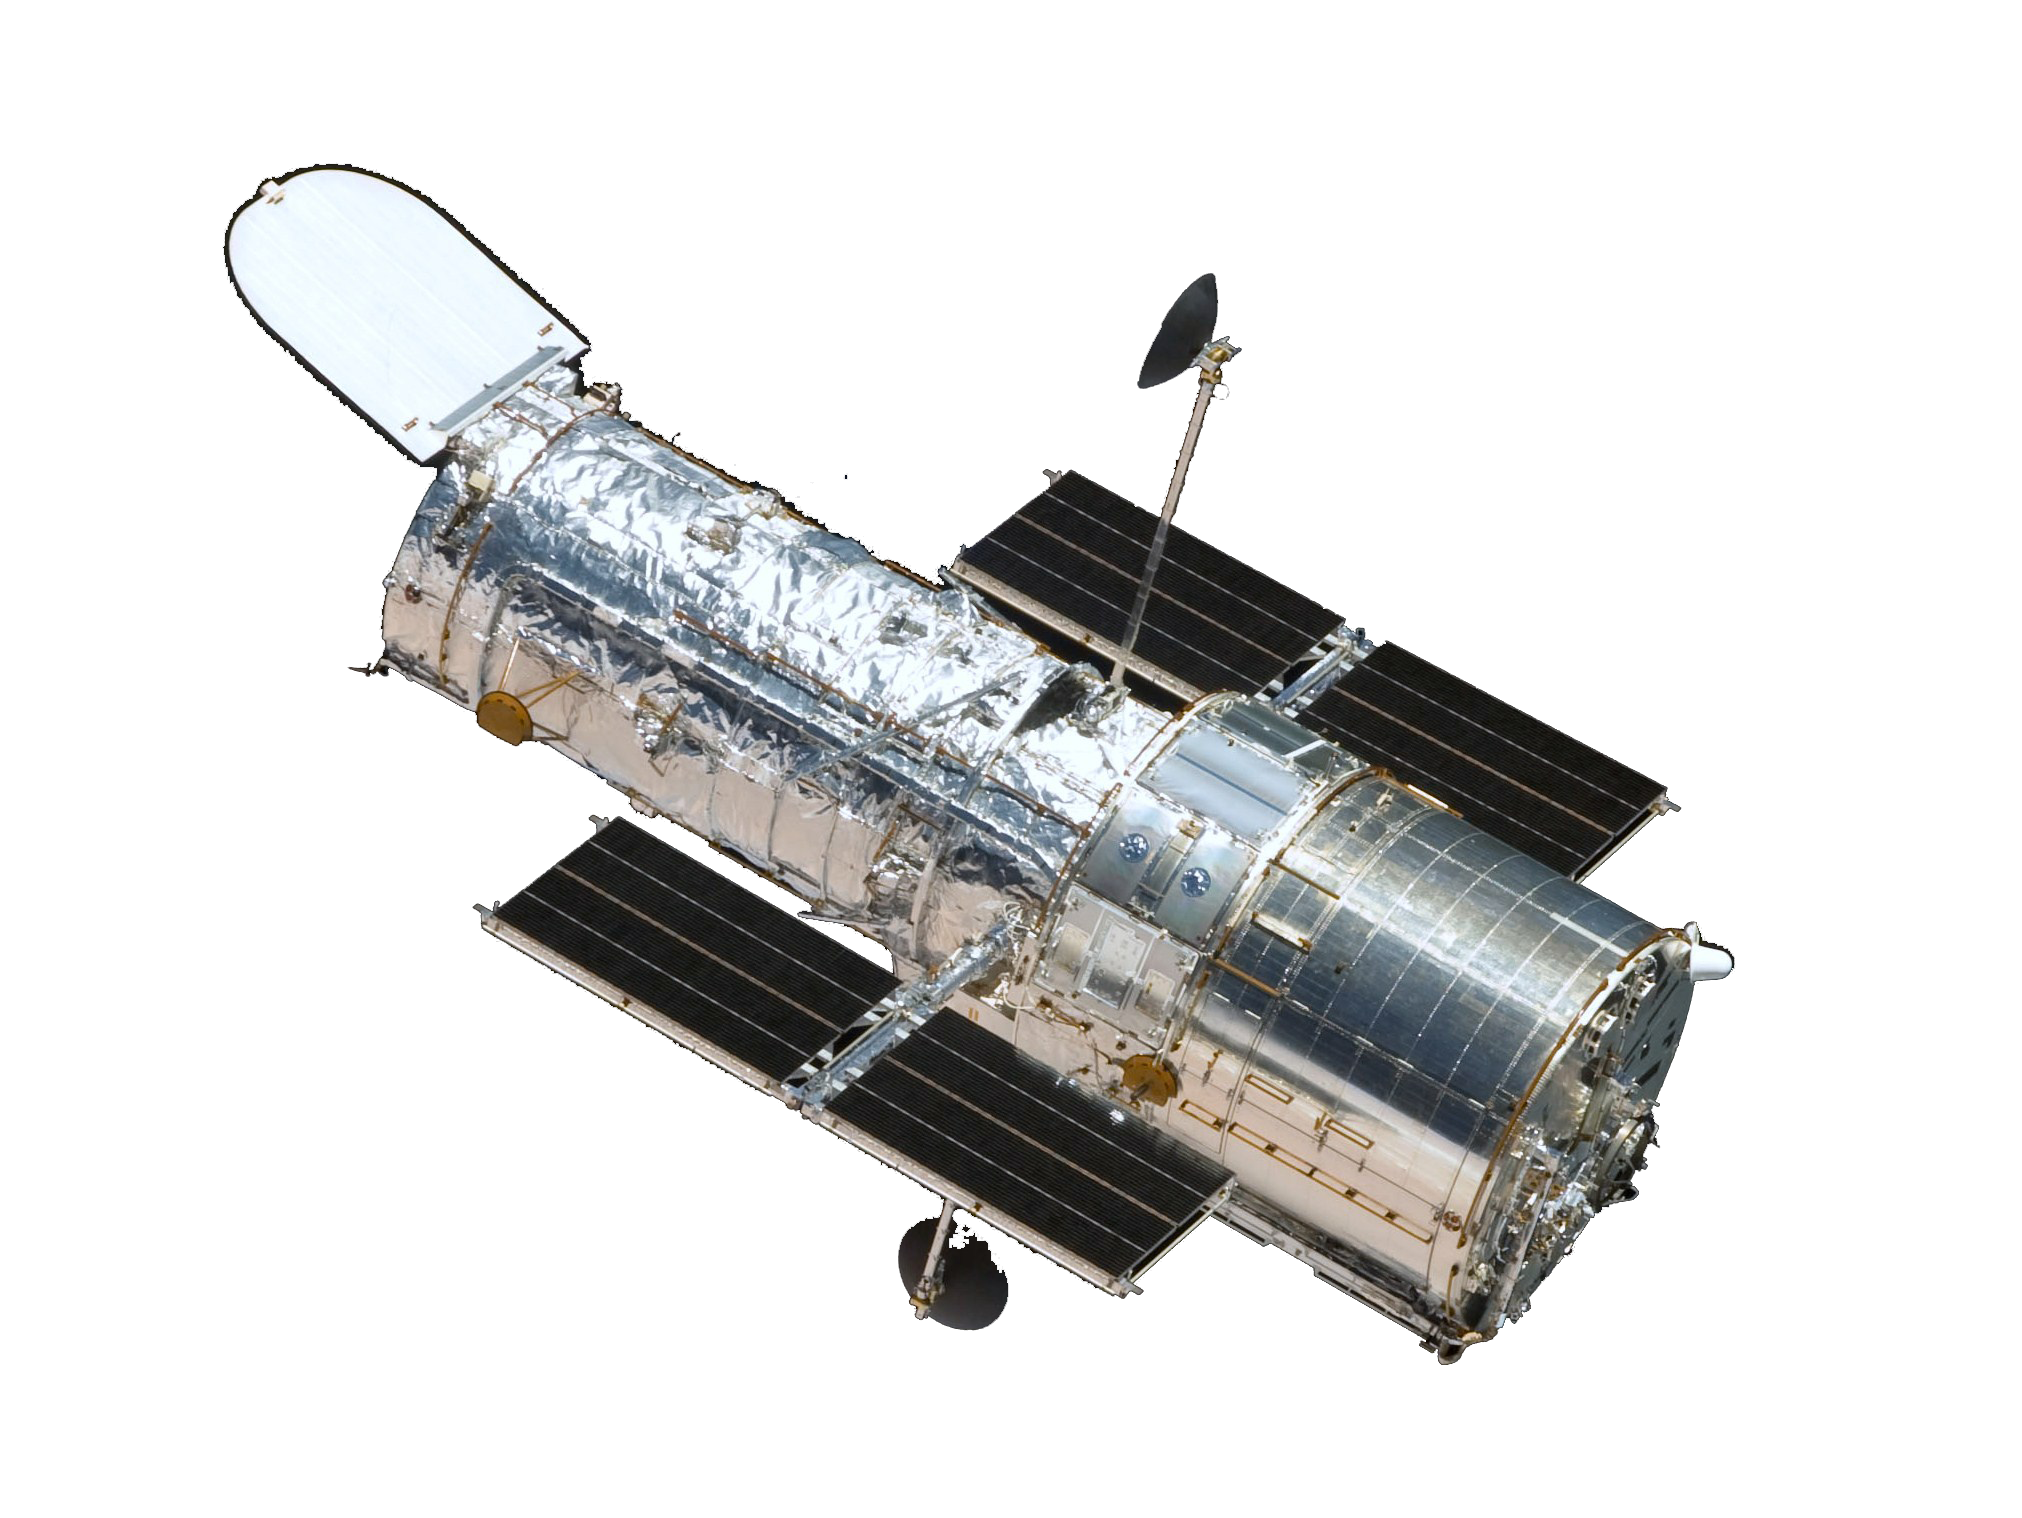 a photo of the Hubble Space Telescope spacecraft